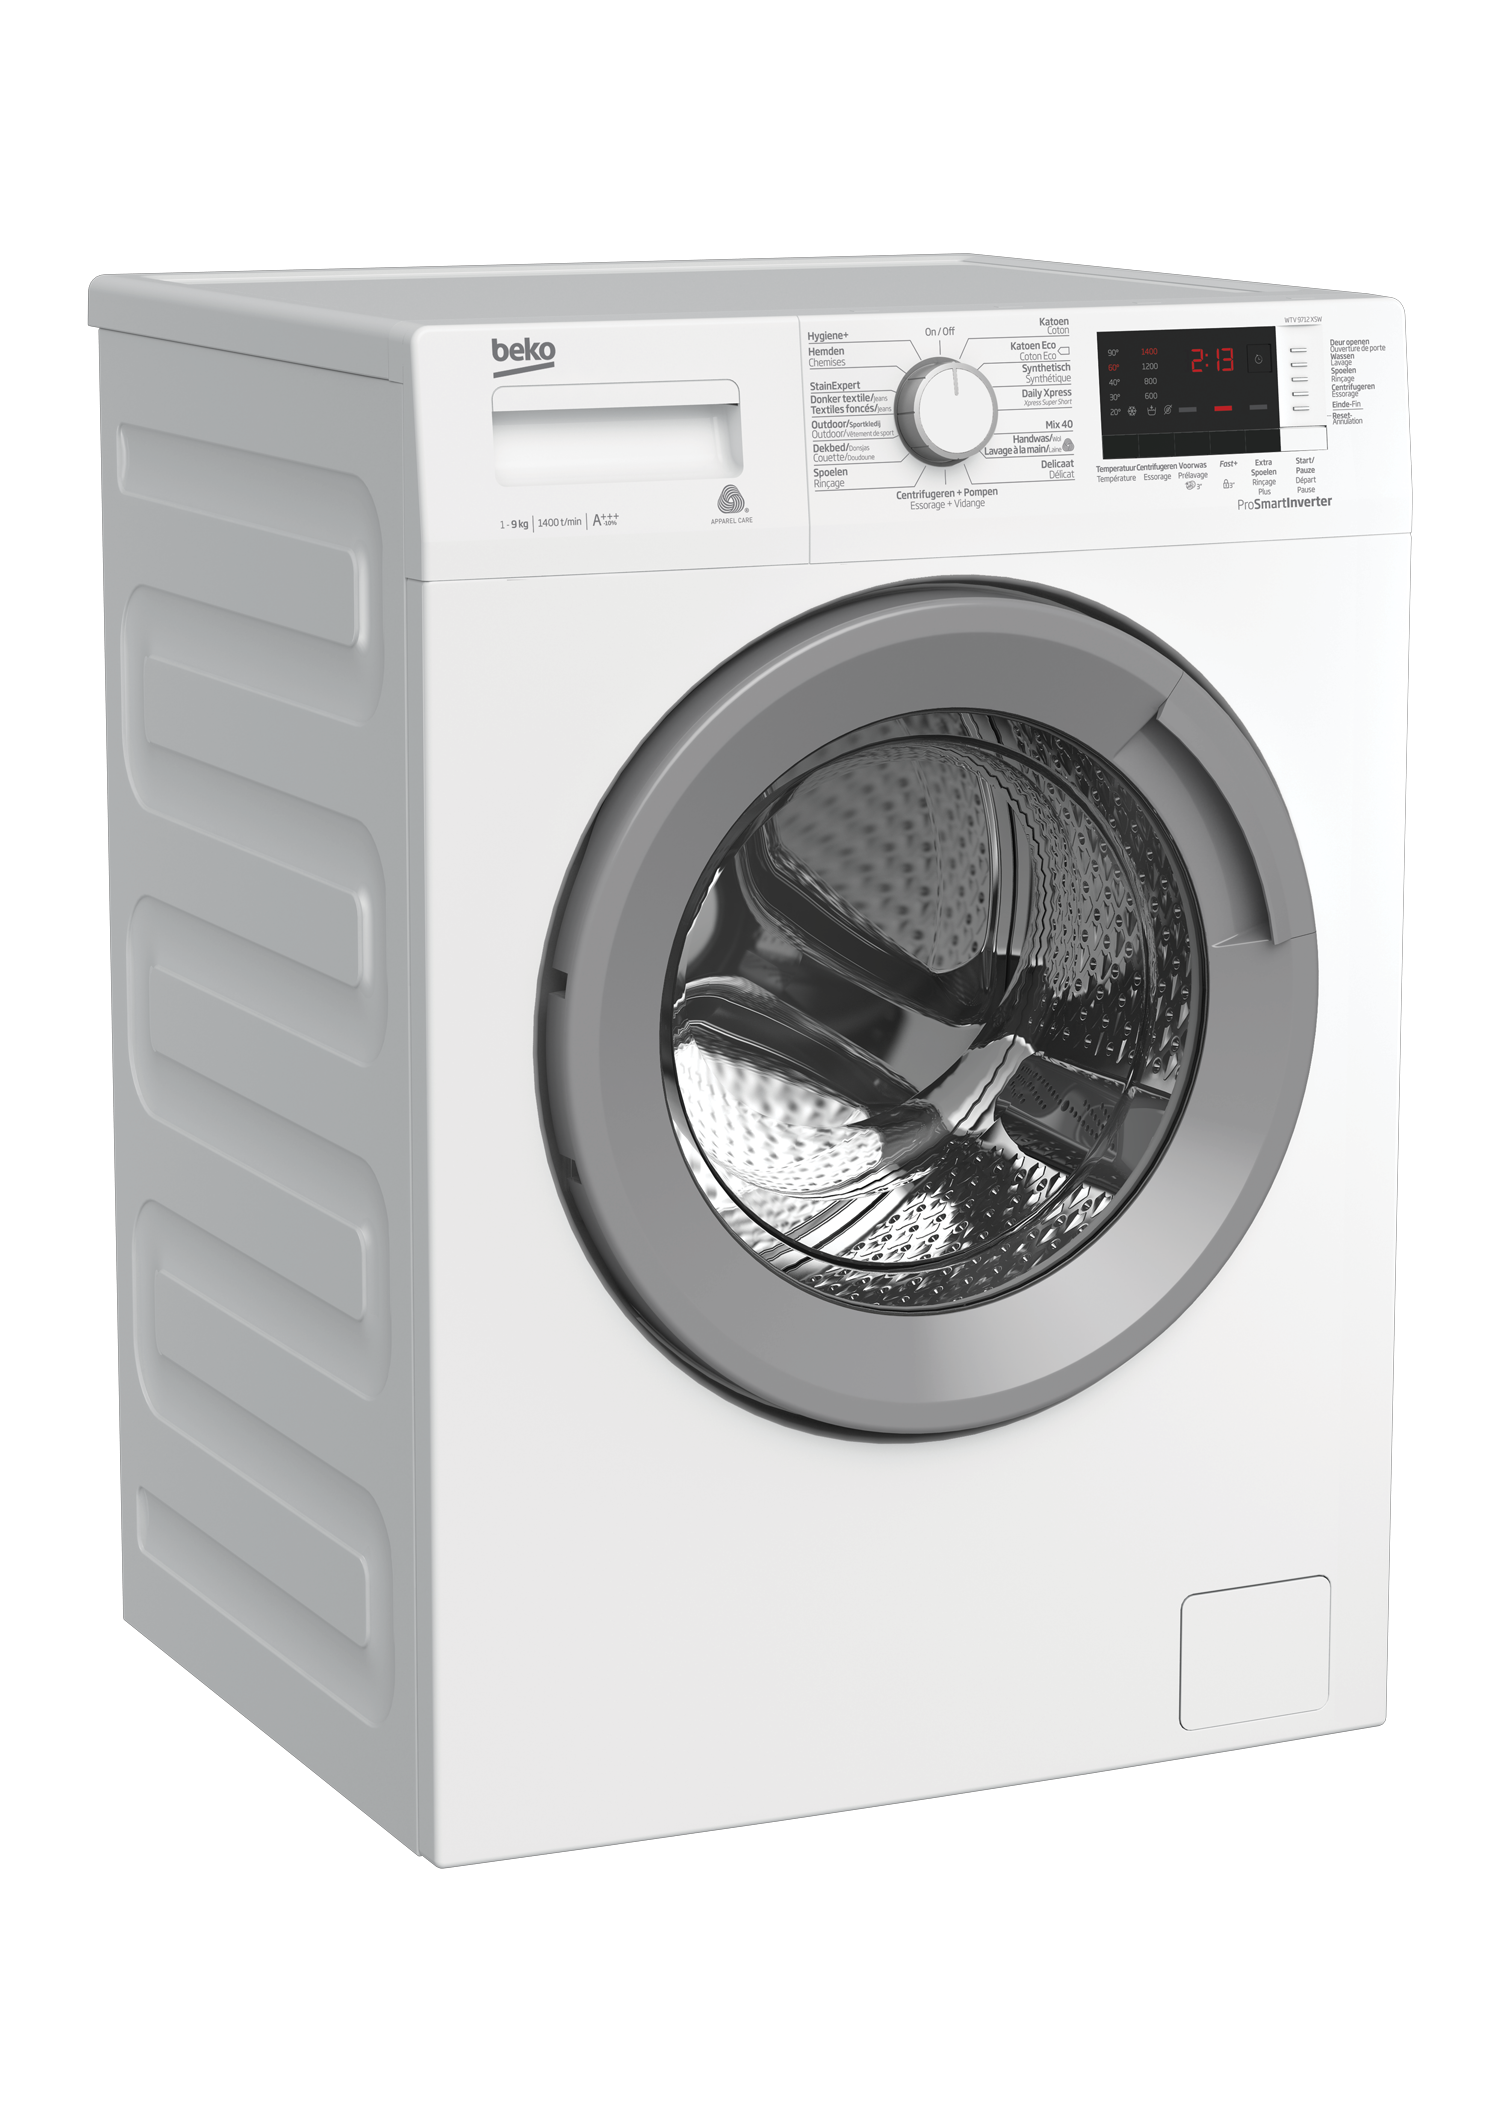 Freestanding Washing Machine (9 kg, 1400 rpm) WTV9712XSW